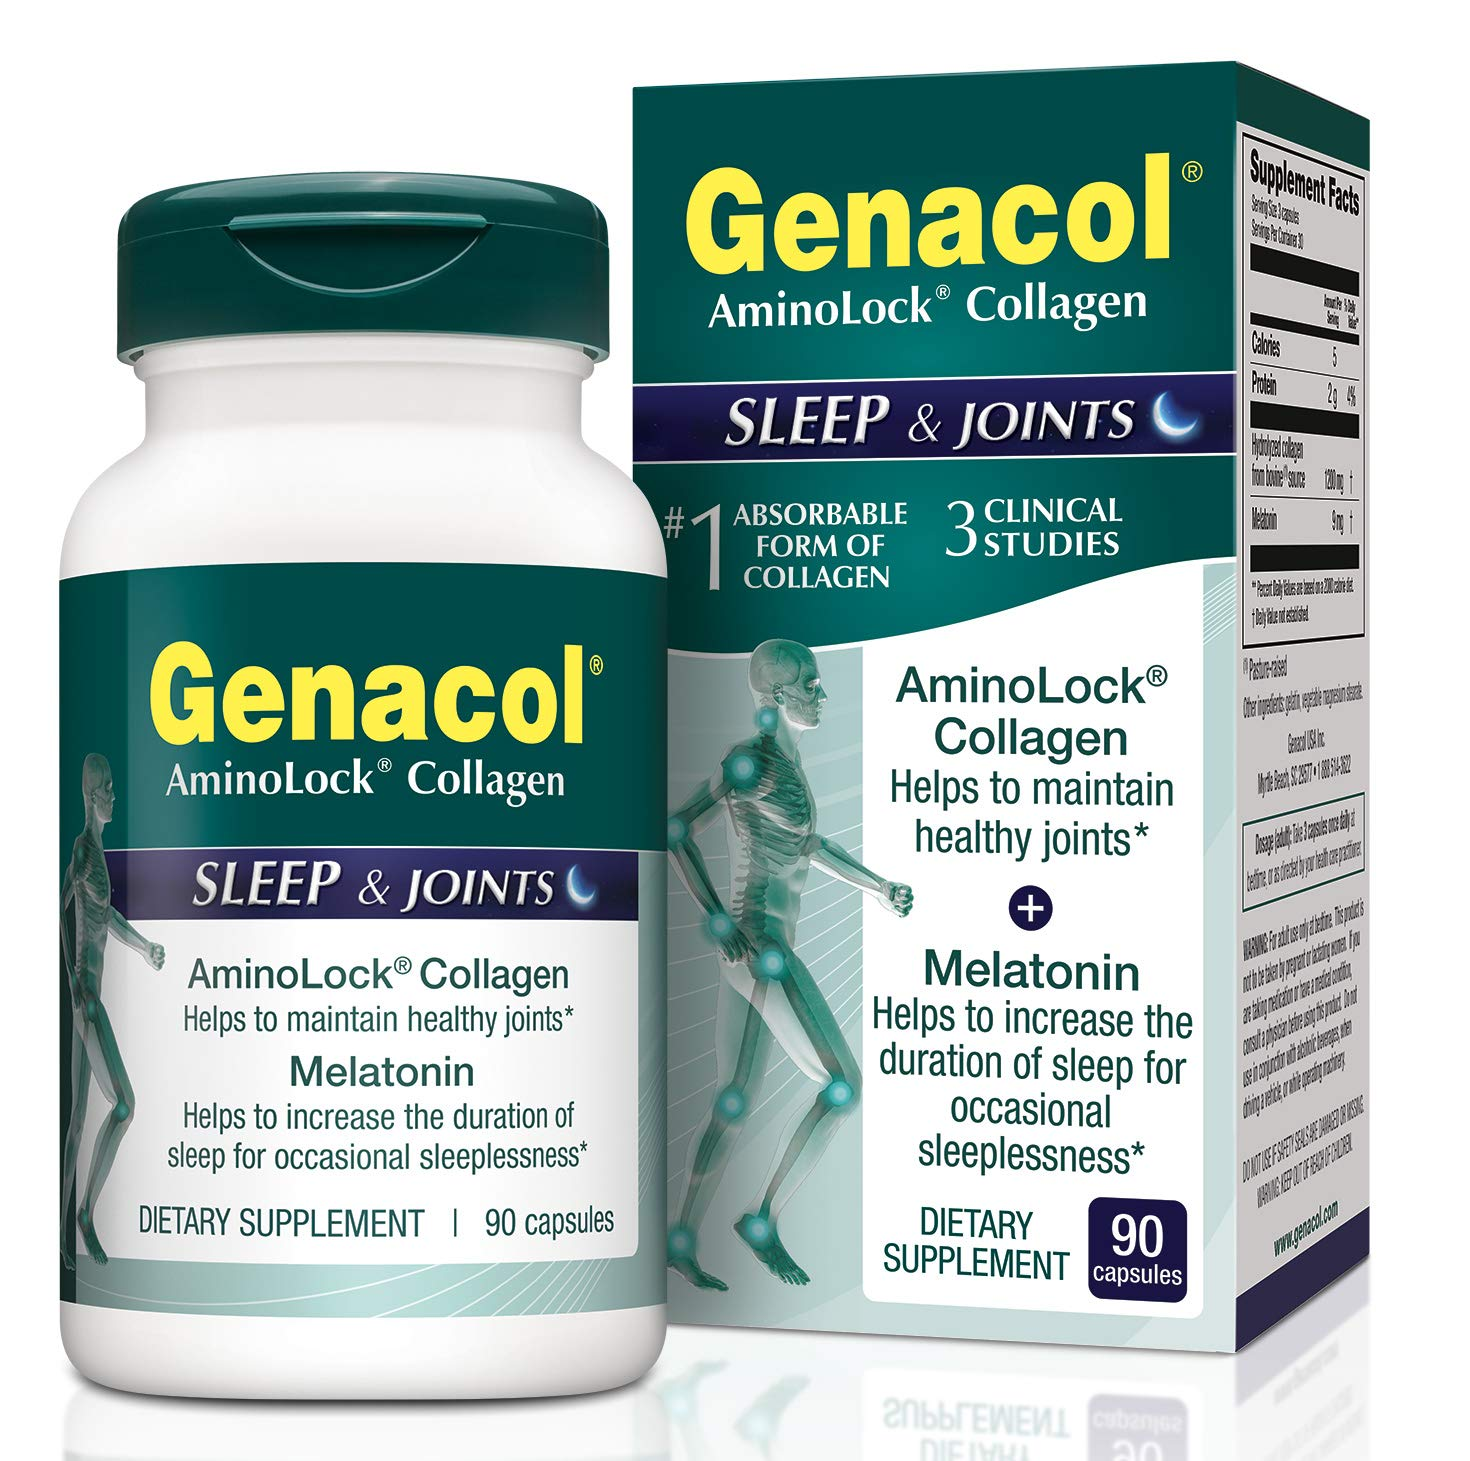 GENACOL Sleep & Joint Supplement for Men and Women | Melatonin + Hydrolyzed Collagen Peptides for